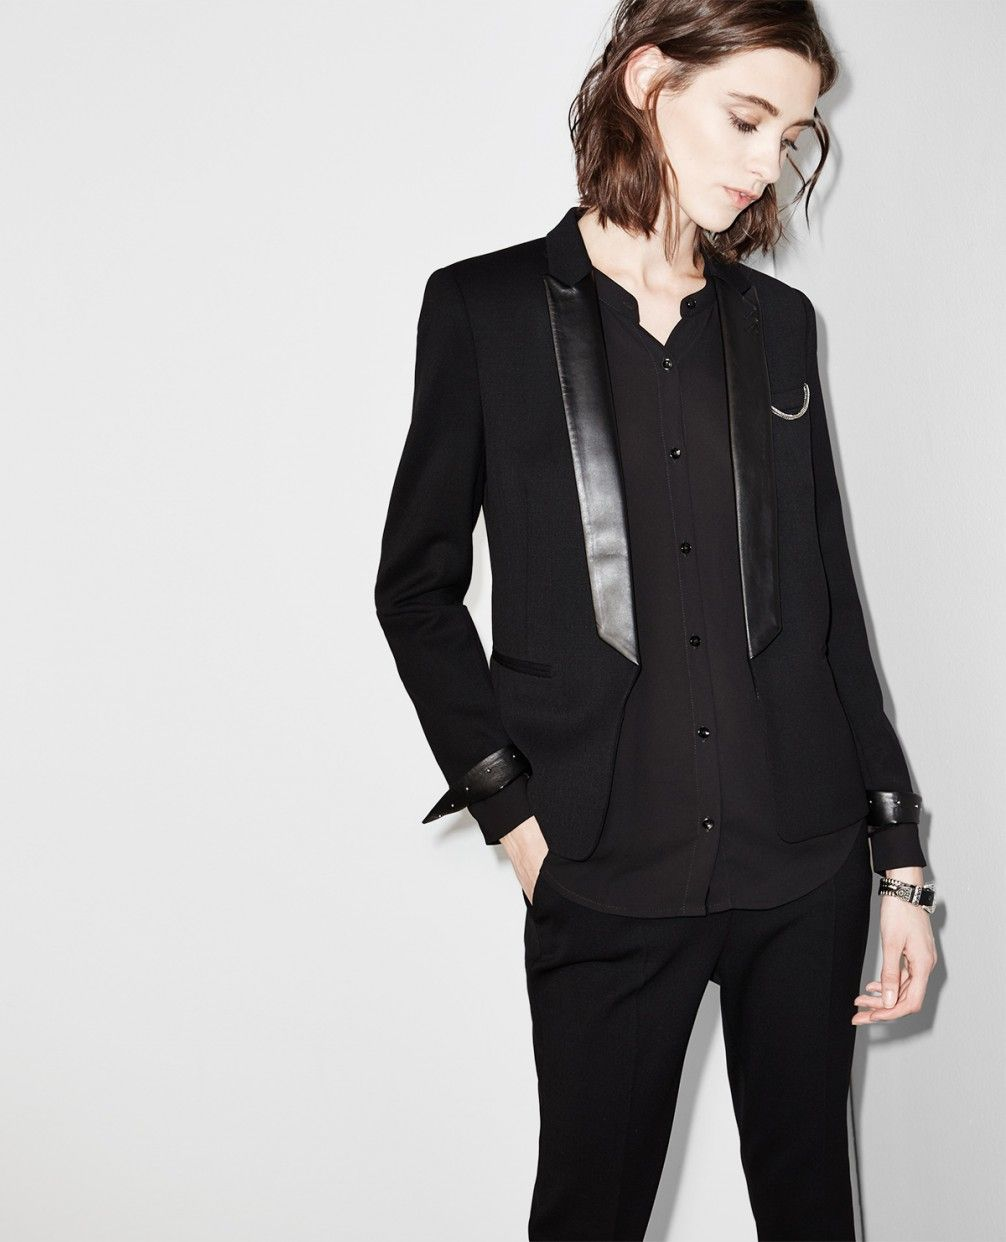 642f2aedda Jacket with tuxedo leather collar - Jackets - Women - The Kooples ...